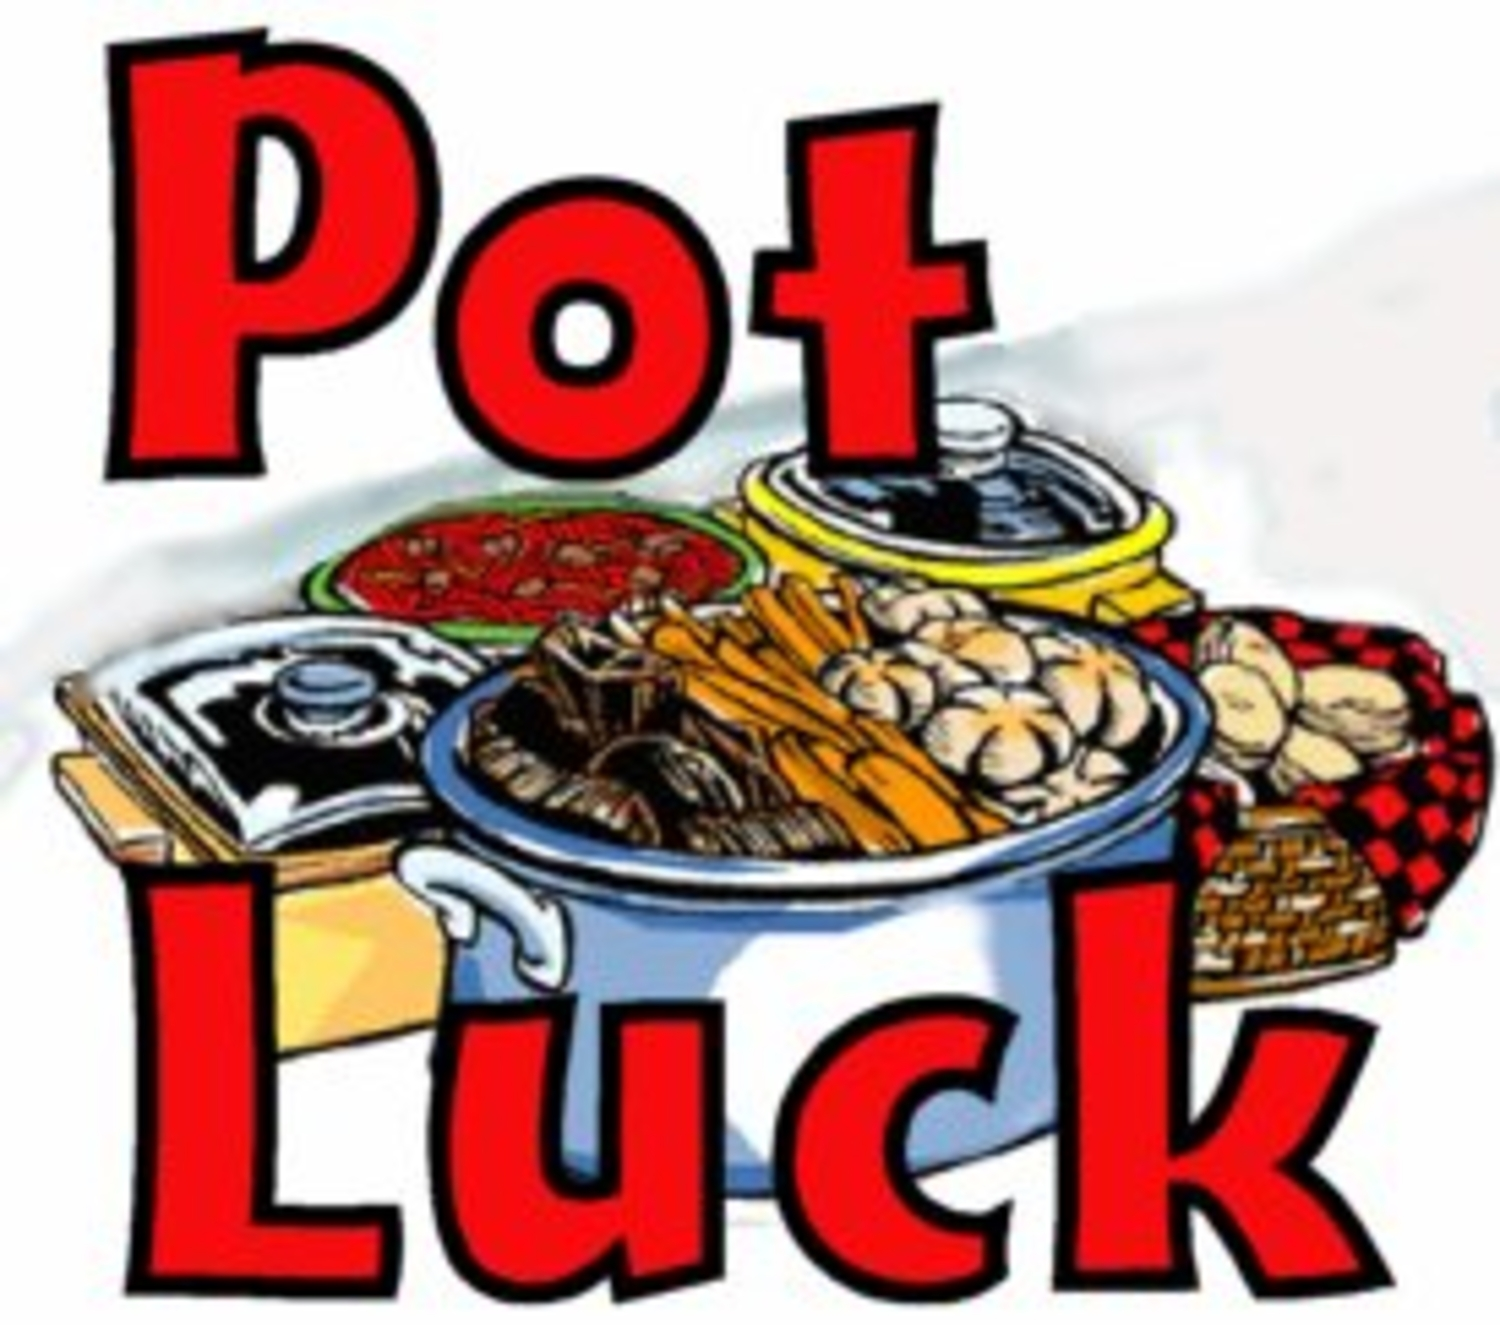 Potluck clipart. Dinner and a movie